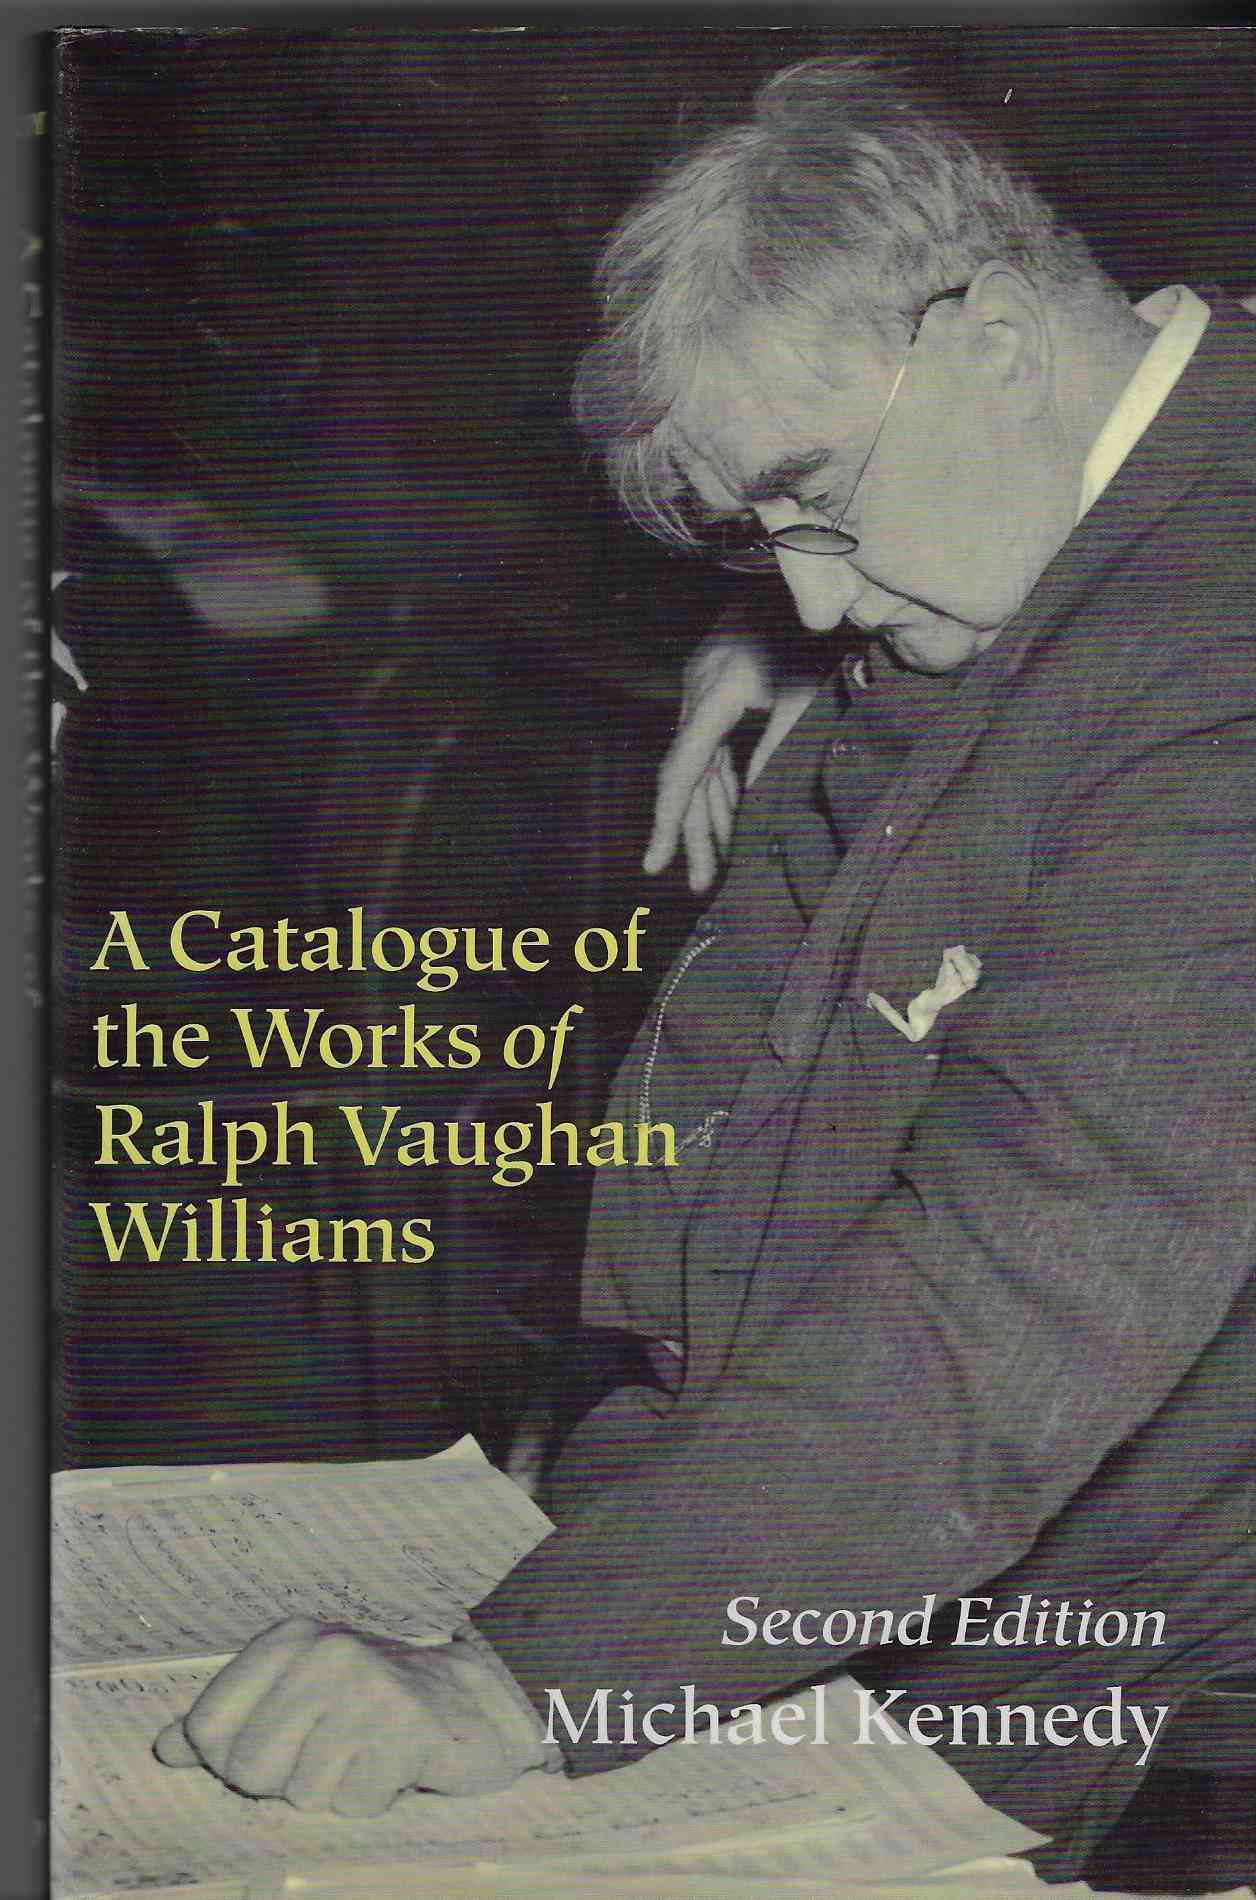 Image for A Catalogue of the Works of Ralph Vaughan Williams